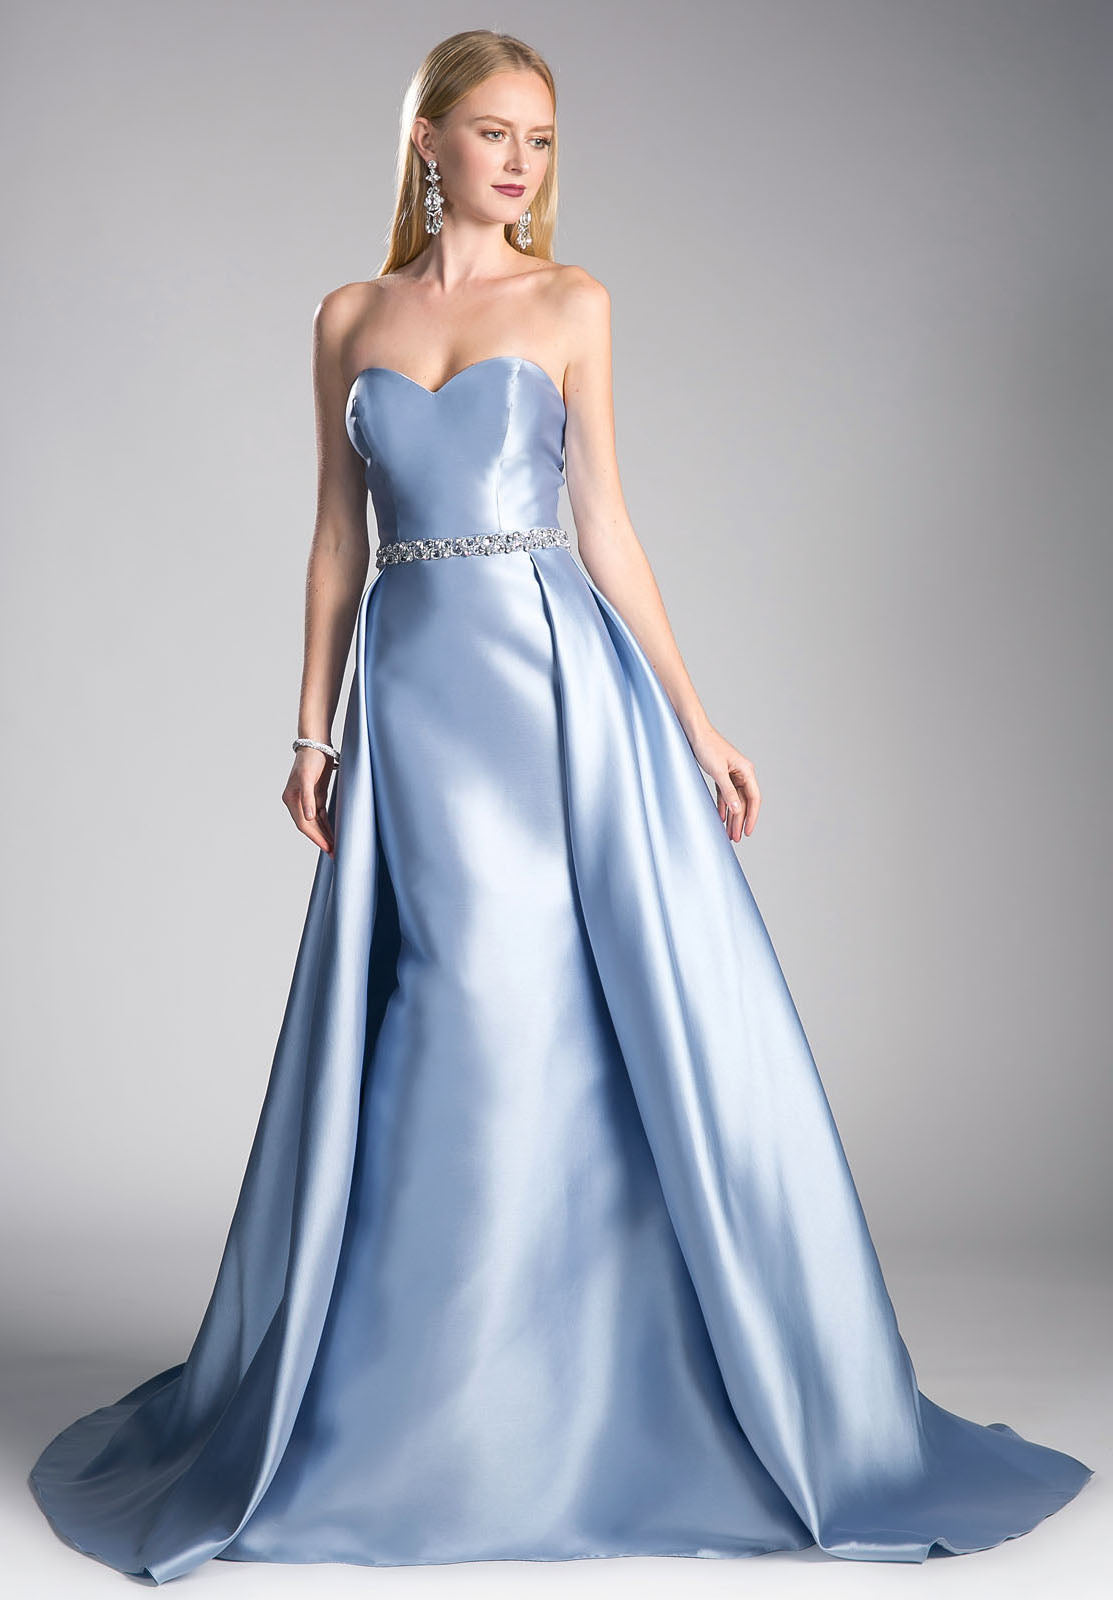 Cinderella Divine 455 Strapless Sweetheart Long Prom Dress Beaded ...